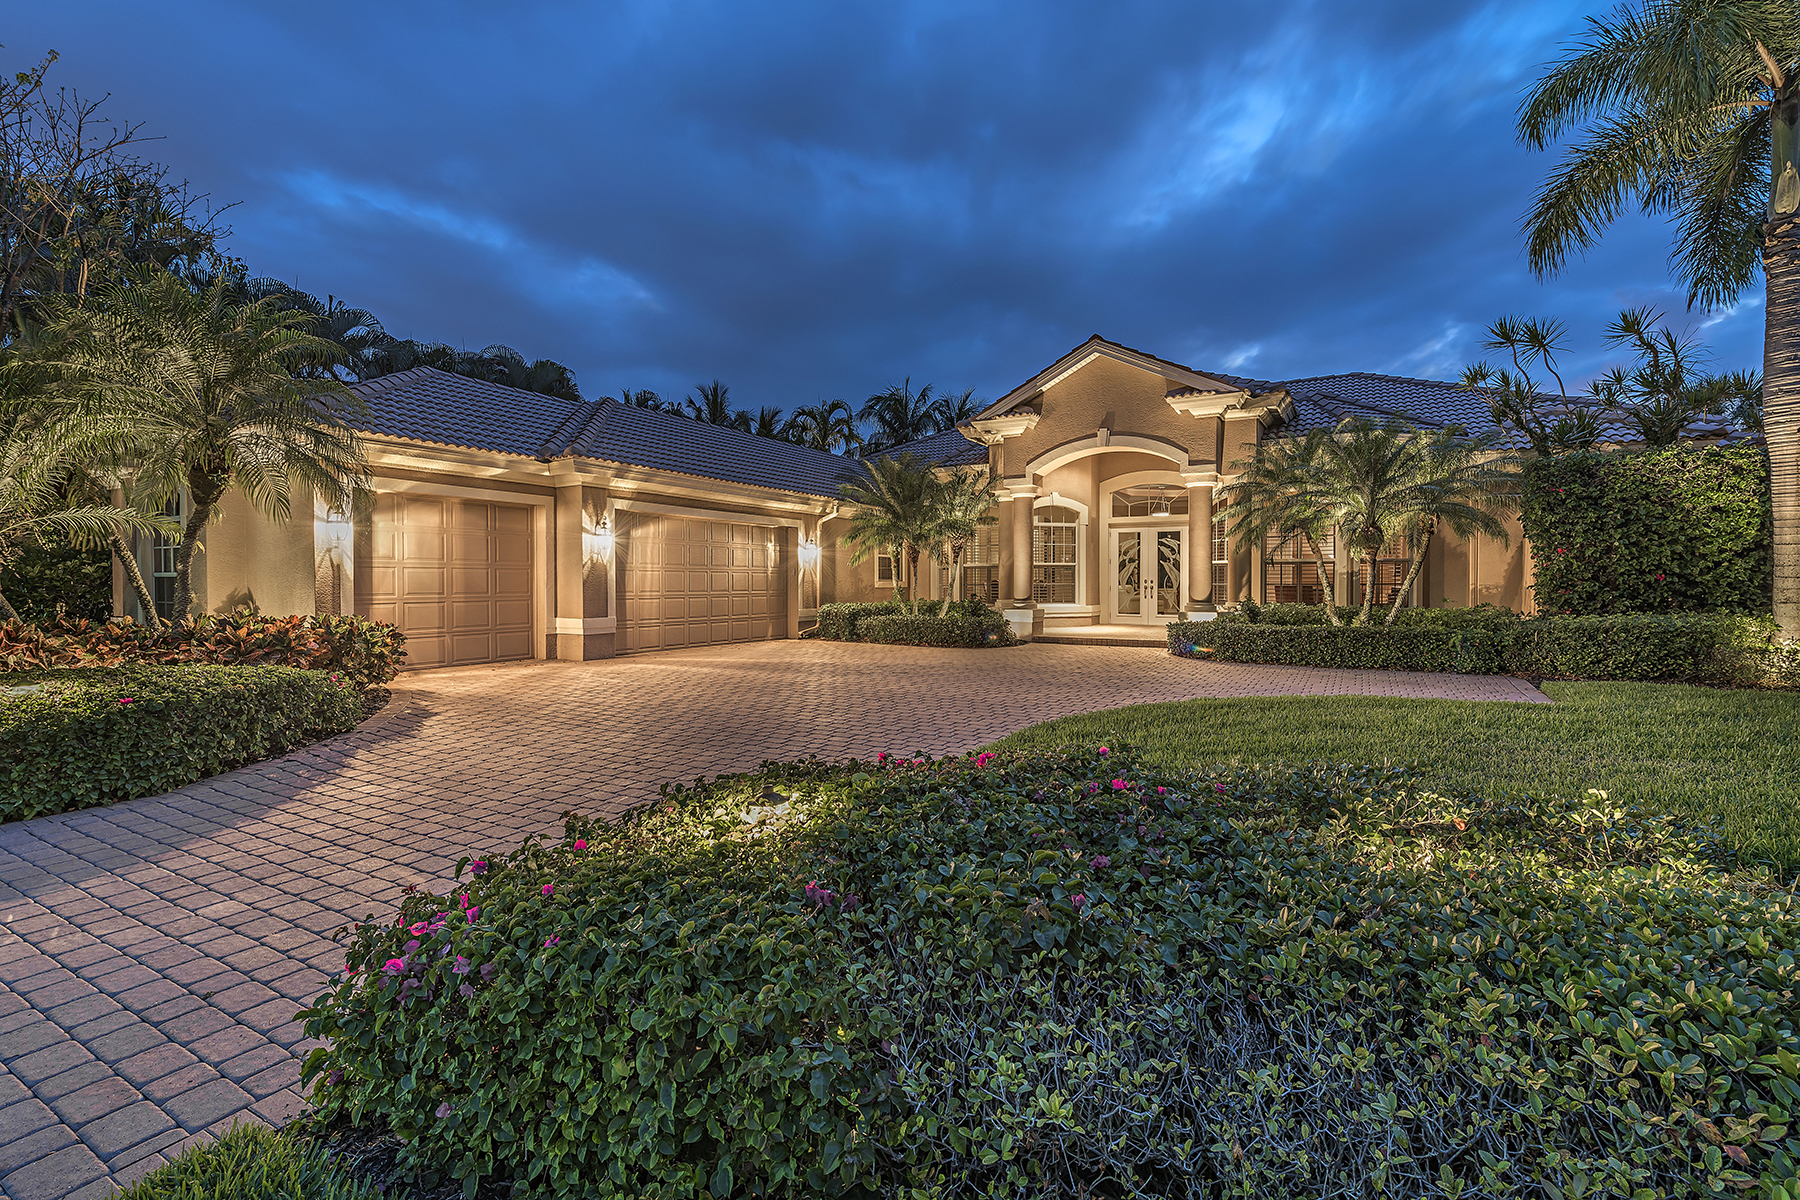 Single Family Home for Sale at PELICAN MARSH - MUIRFIELD AT THE MARSH 8755 Muirfield Dr Naples, Florida, 34109 United States